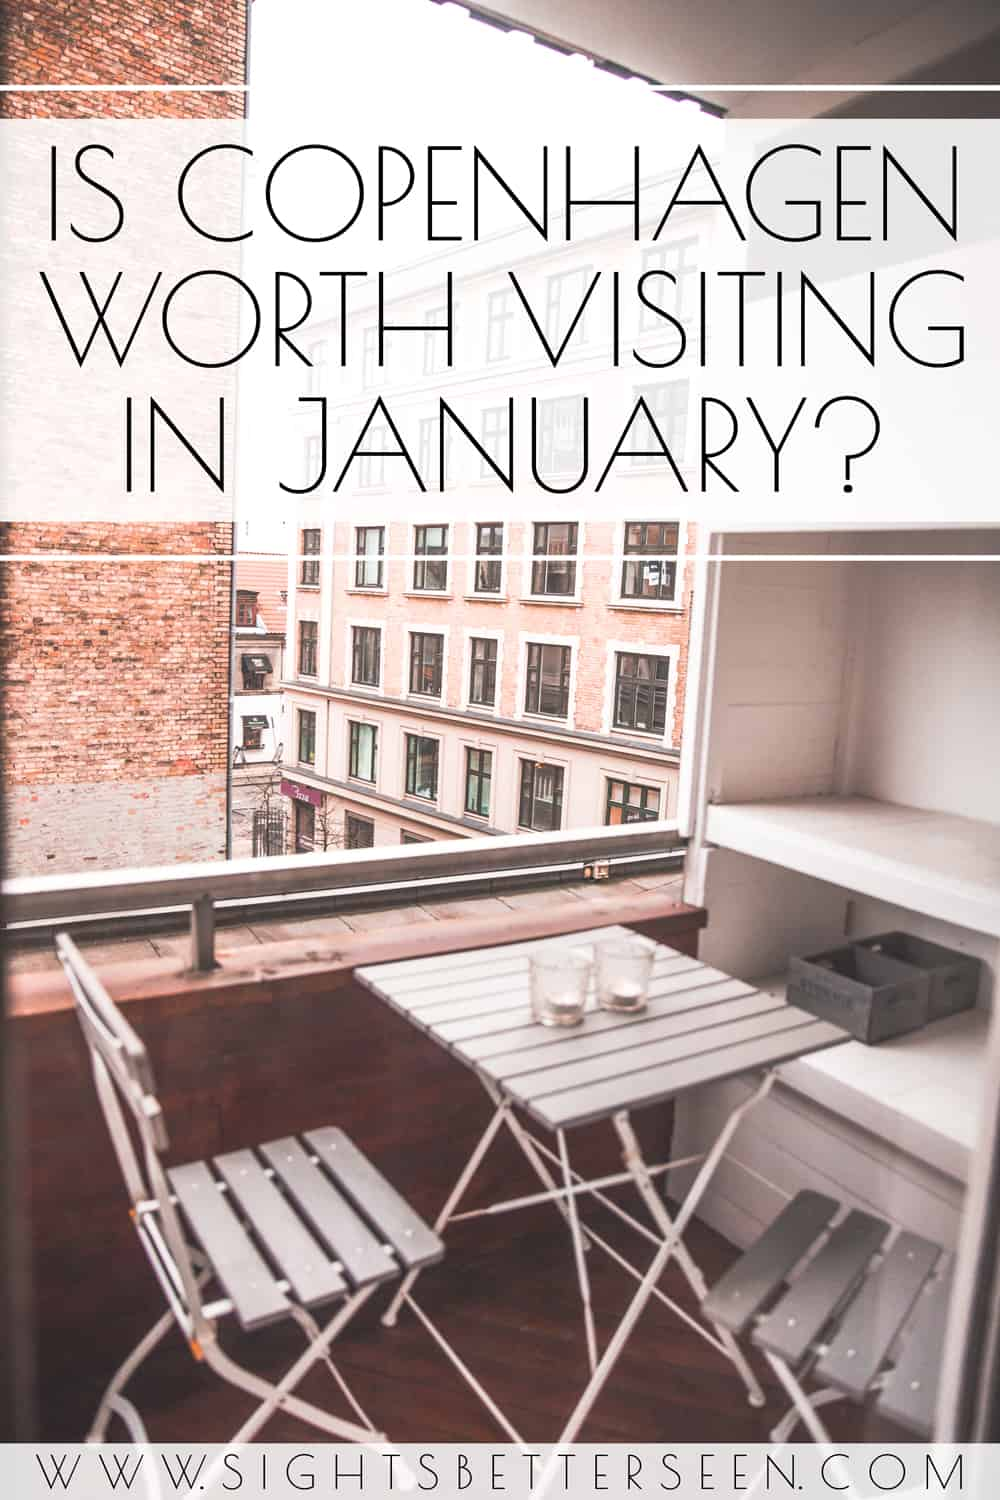 All you need to know about visiting Copenhagen in January! I'll answer what you should pack, what the weather was like, and the best activities like Nyhavn and Christiana!